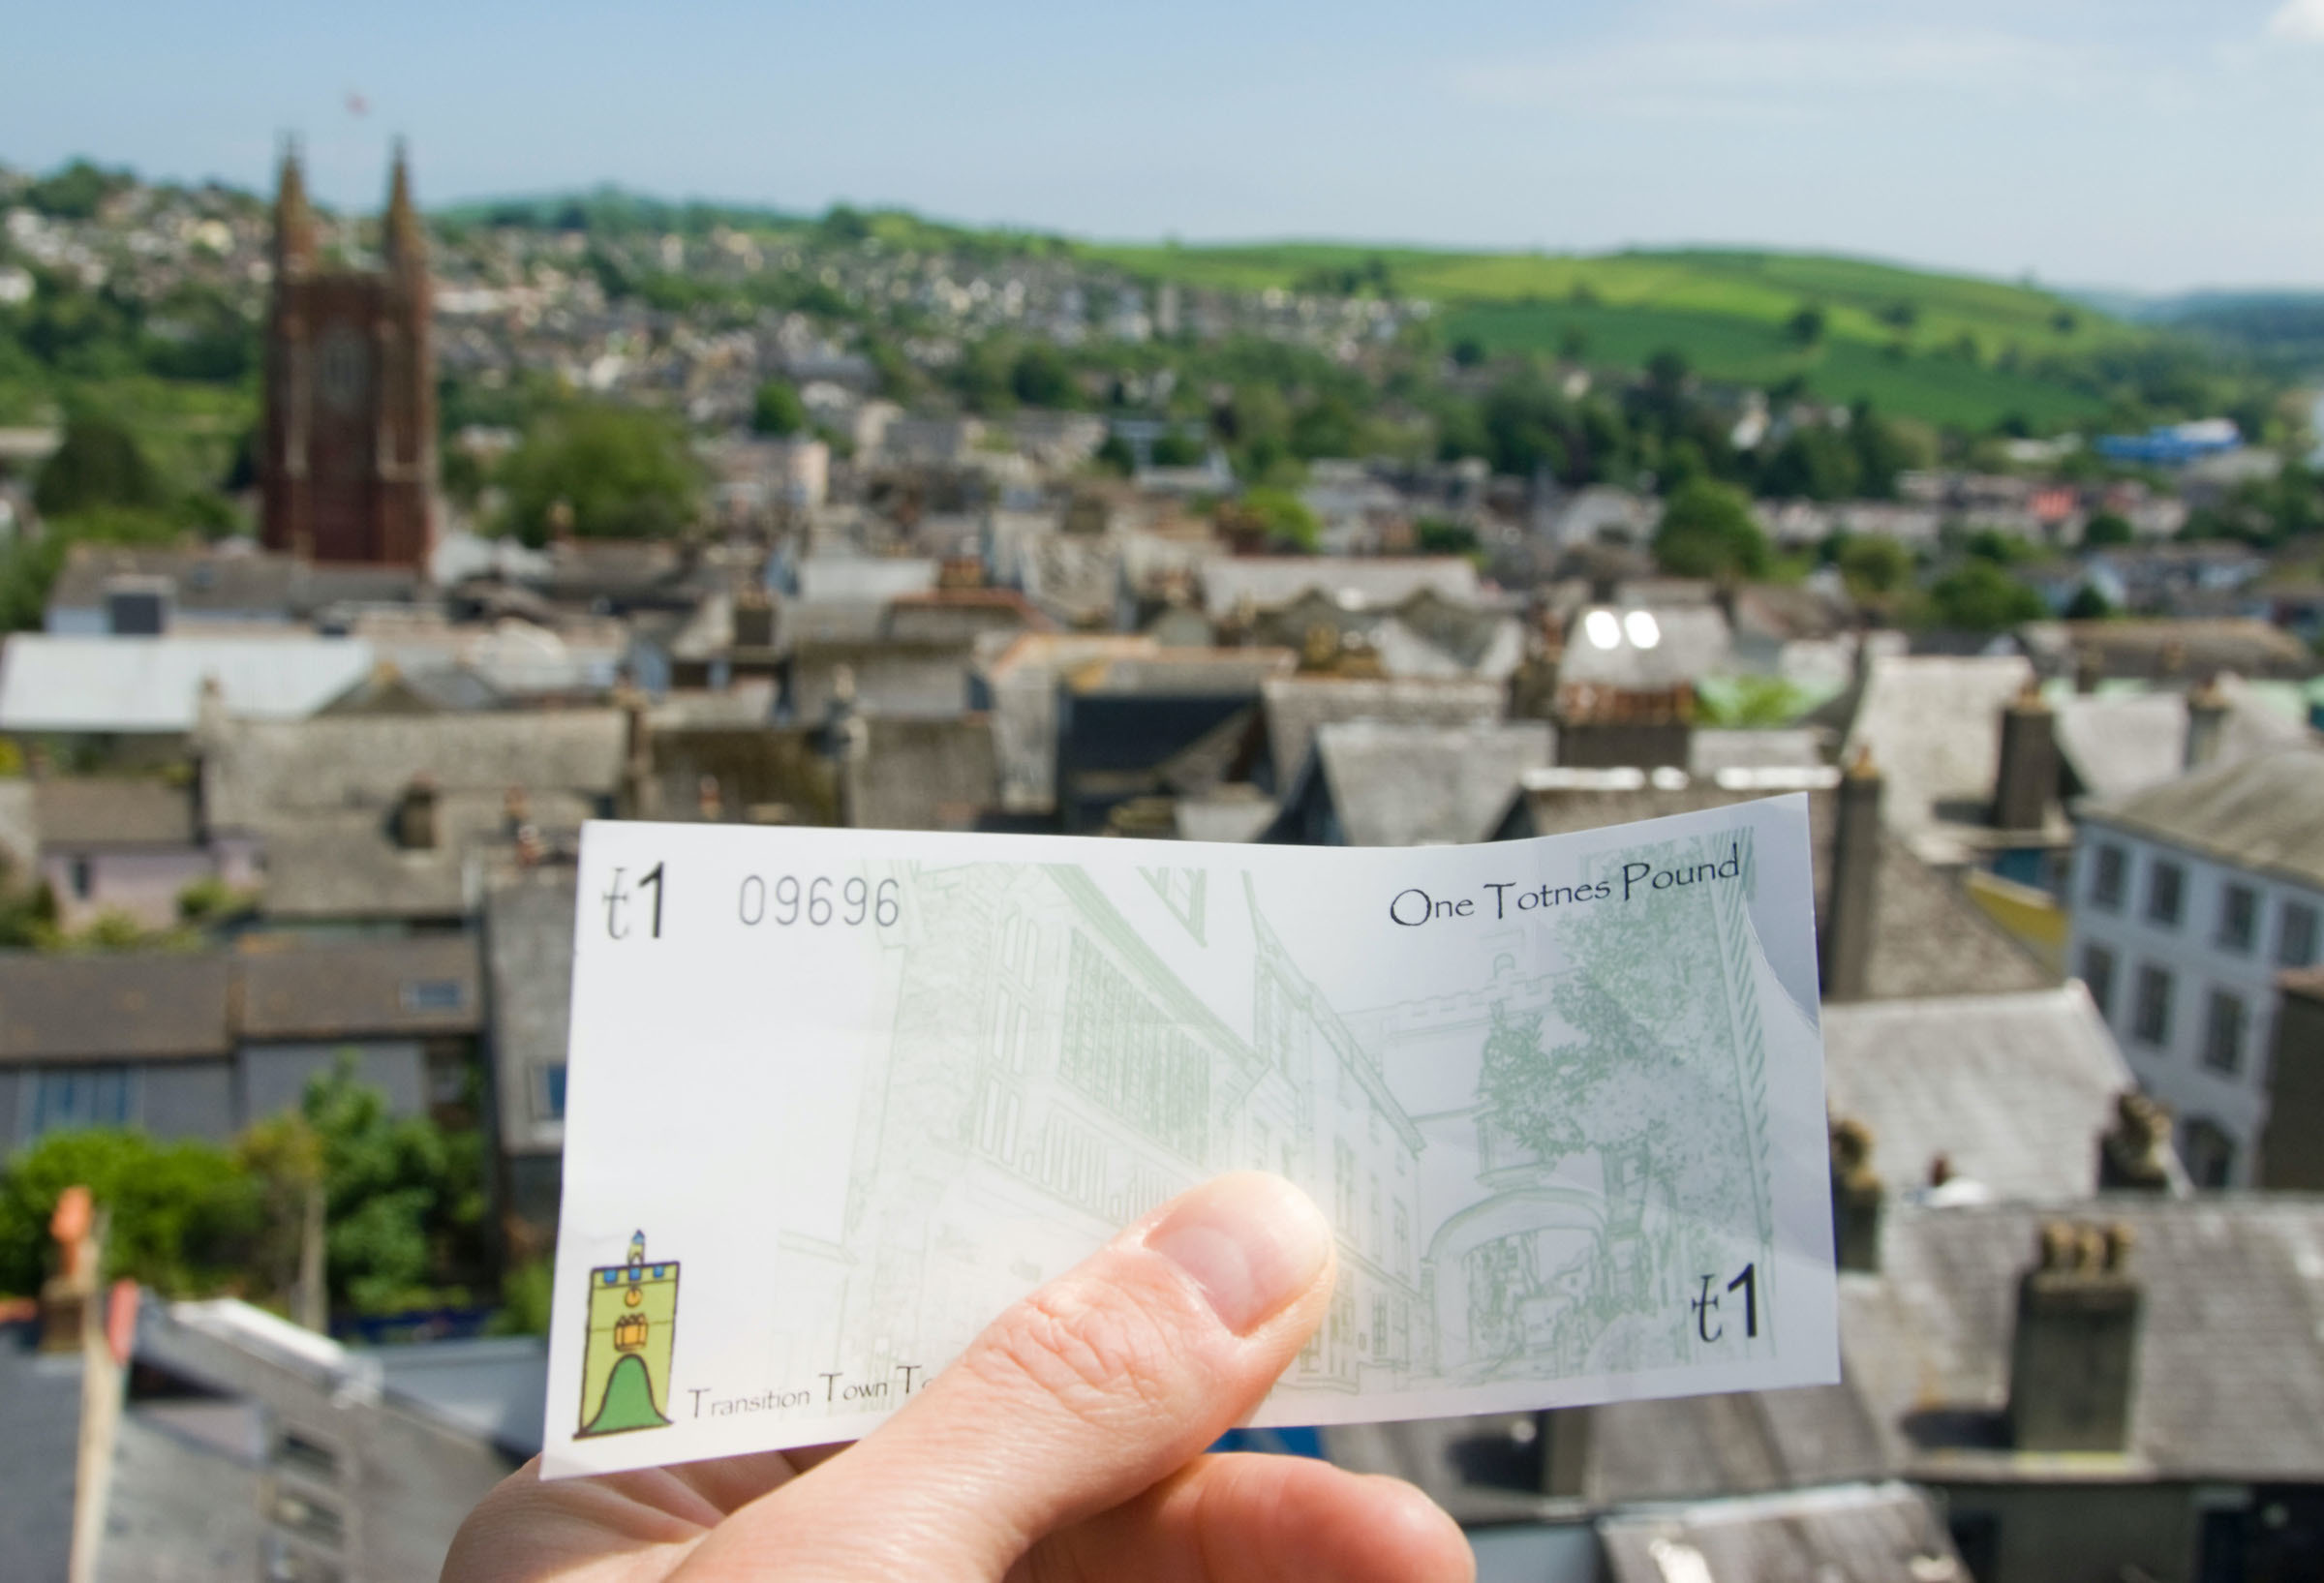 Transition Town Totnes launched the UK's first Transition Currency.